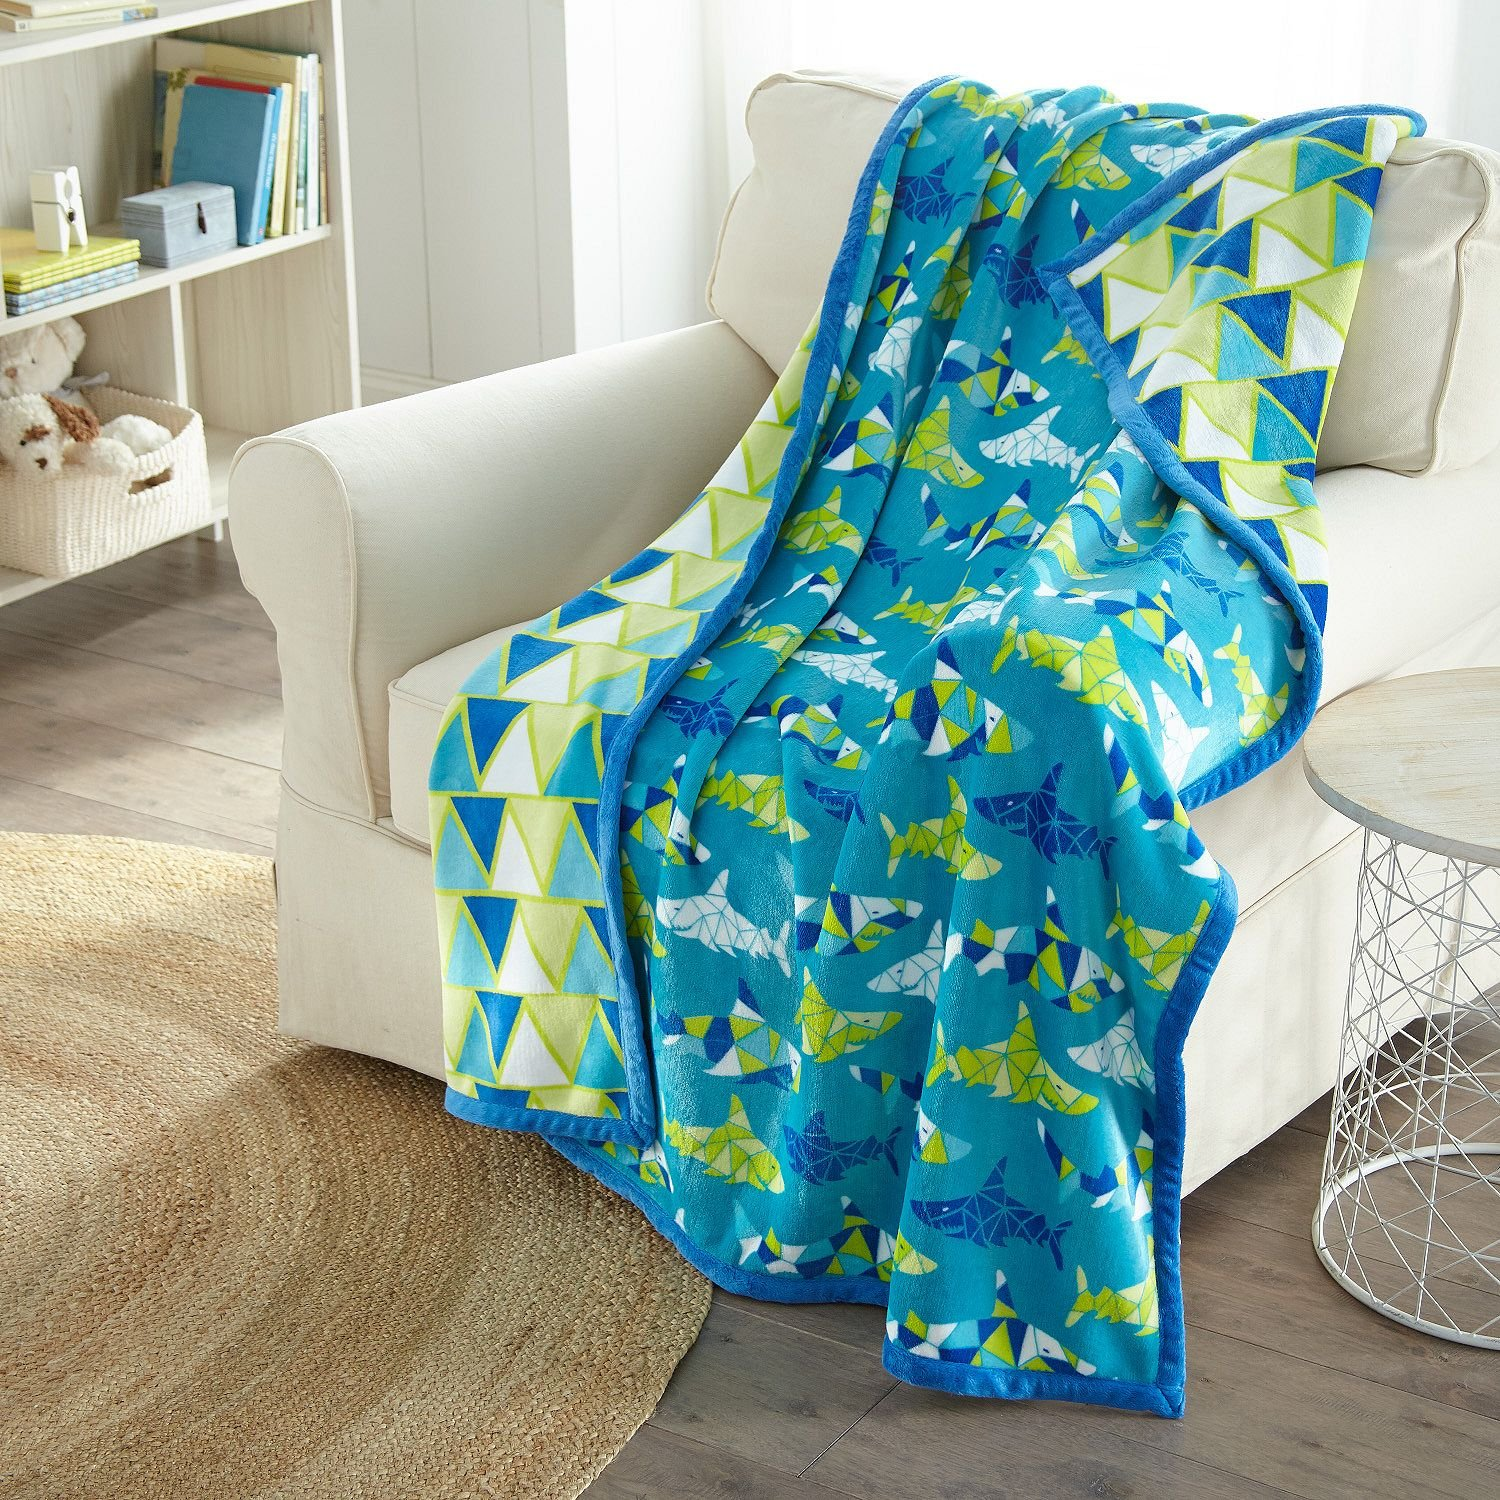 American Kids Reversible Throw 50 x 60 - Sharks